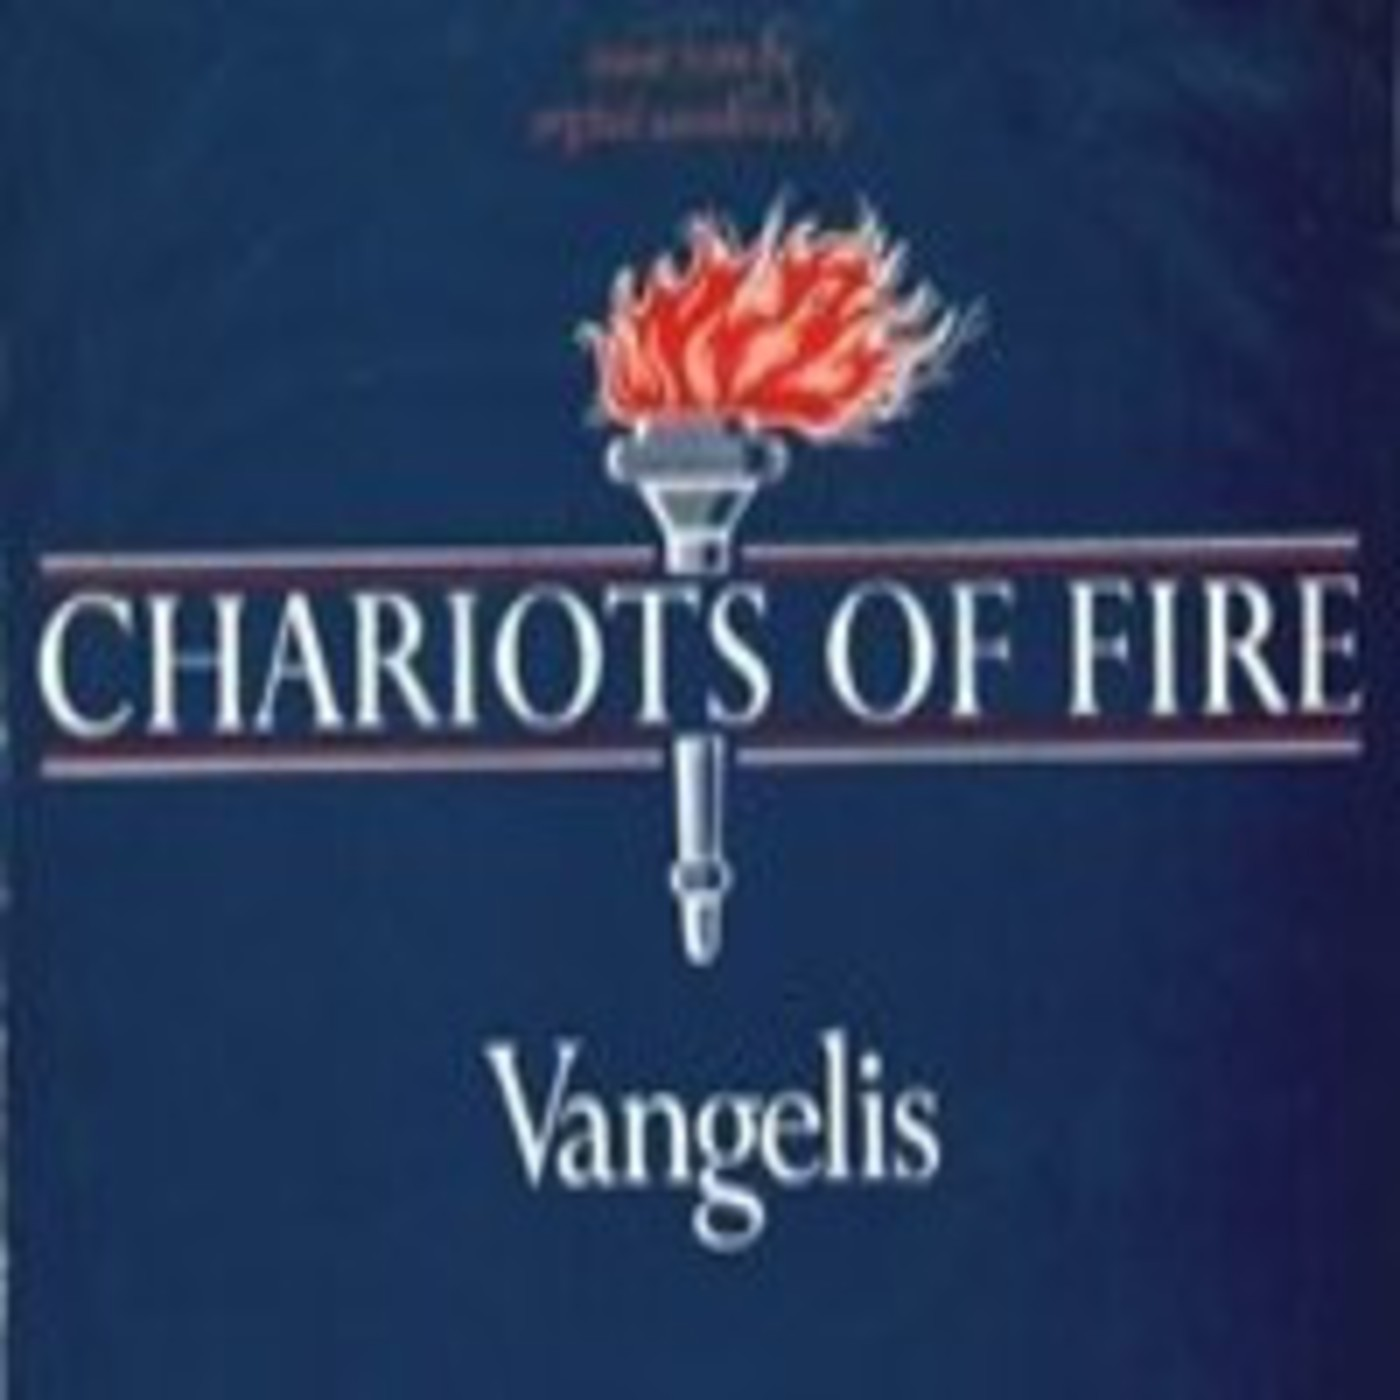 Chariots Of Fire Carros De Fuego Vangelis In Bso De Cine In Mp3 05 08 A Las 06 51 22 03 27 1366223 Ivoox